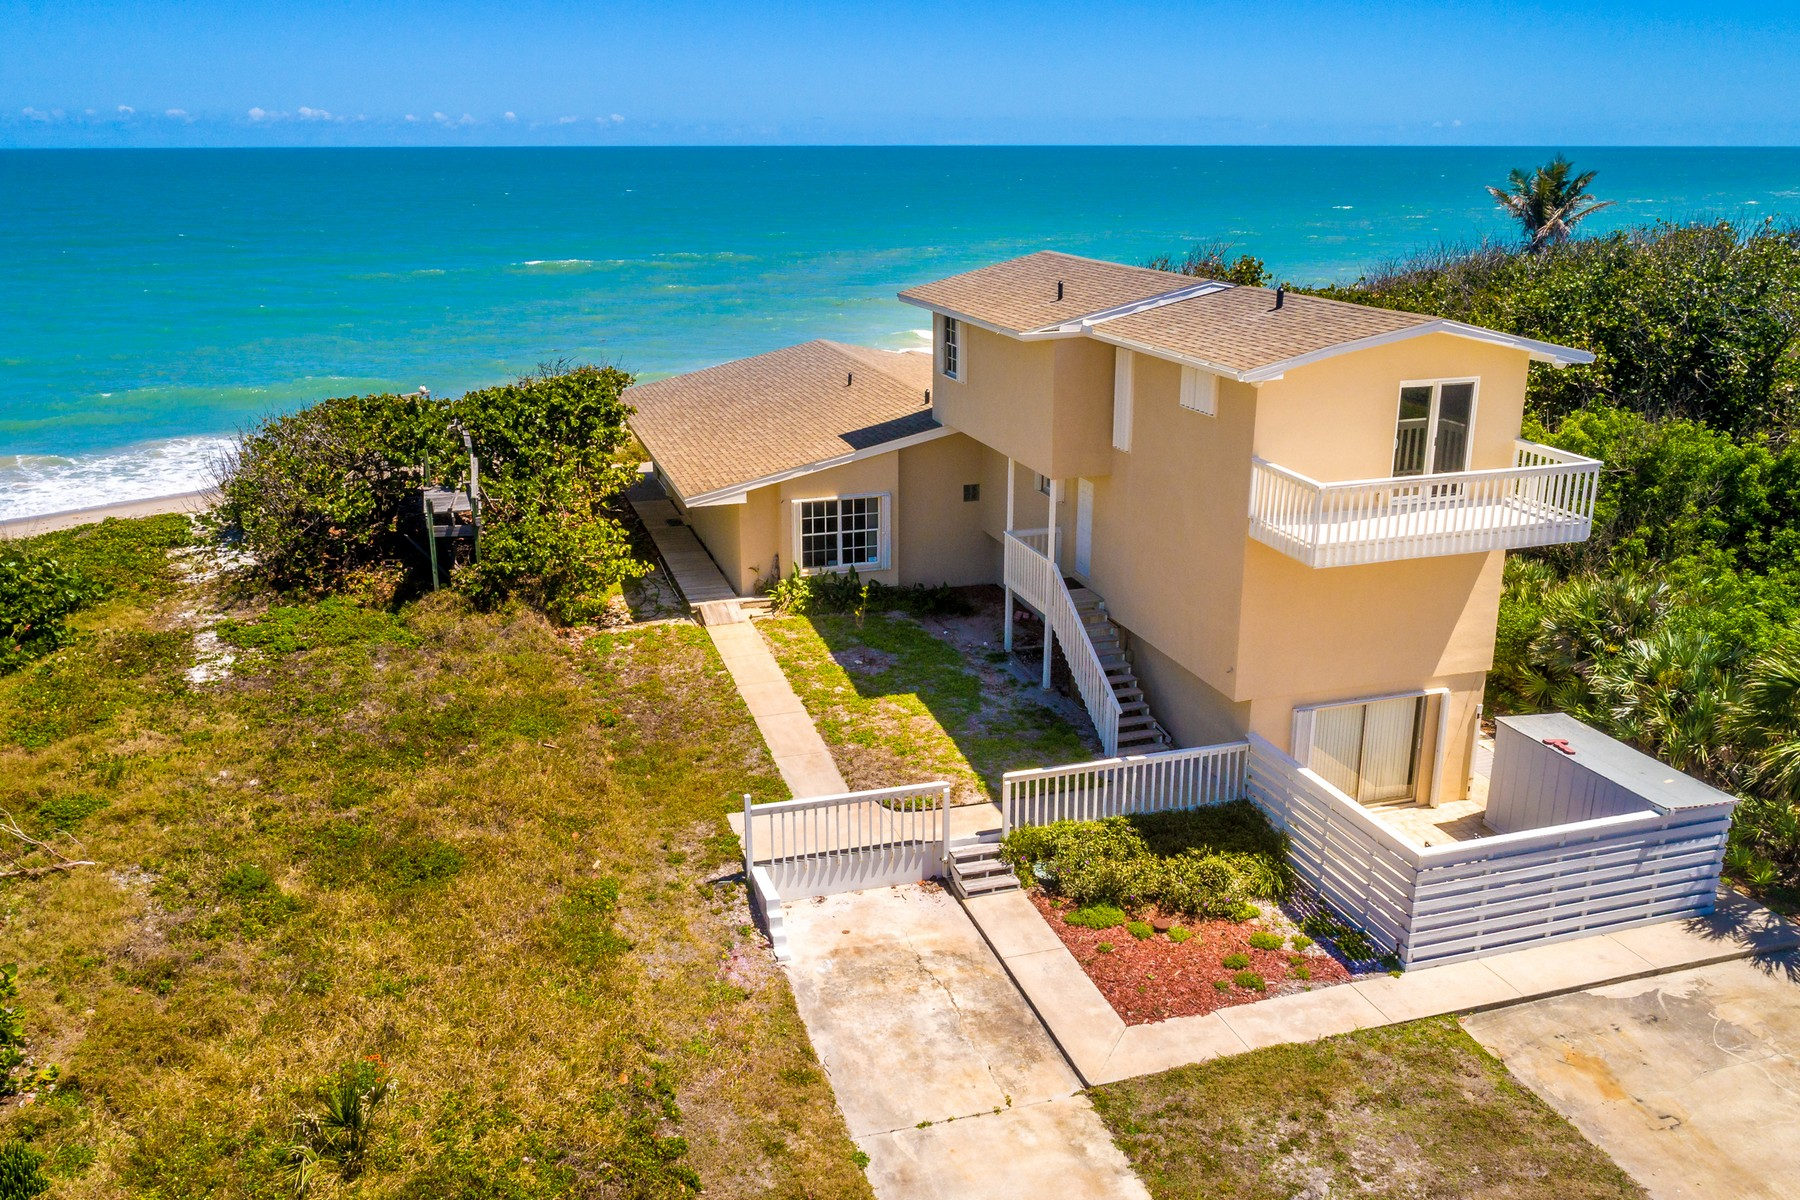 Duplex for Sale at Ocean Front 5000 Bock A1A 5255 Highway A1A Melbourne Beach, Florida 32951 United States